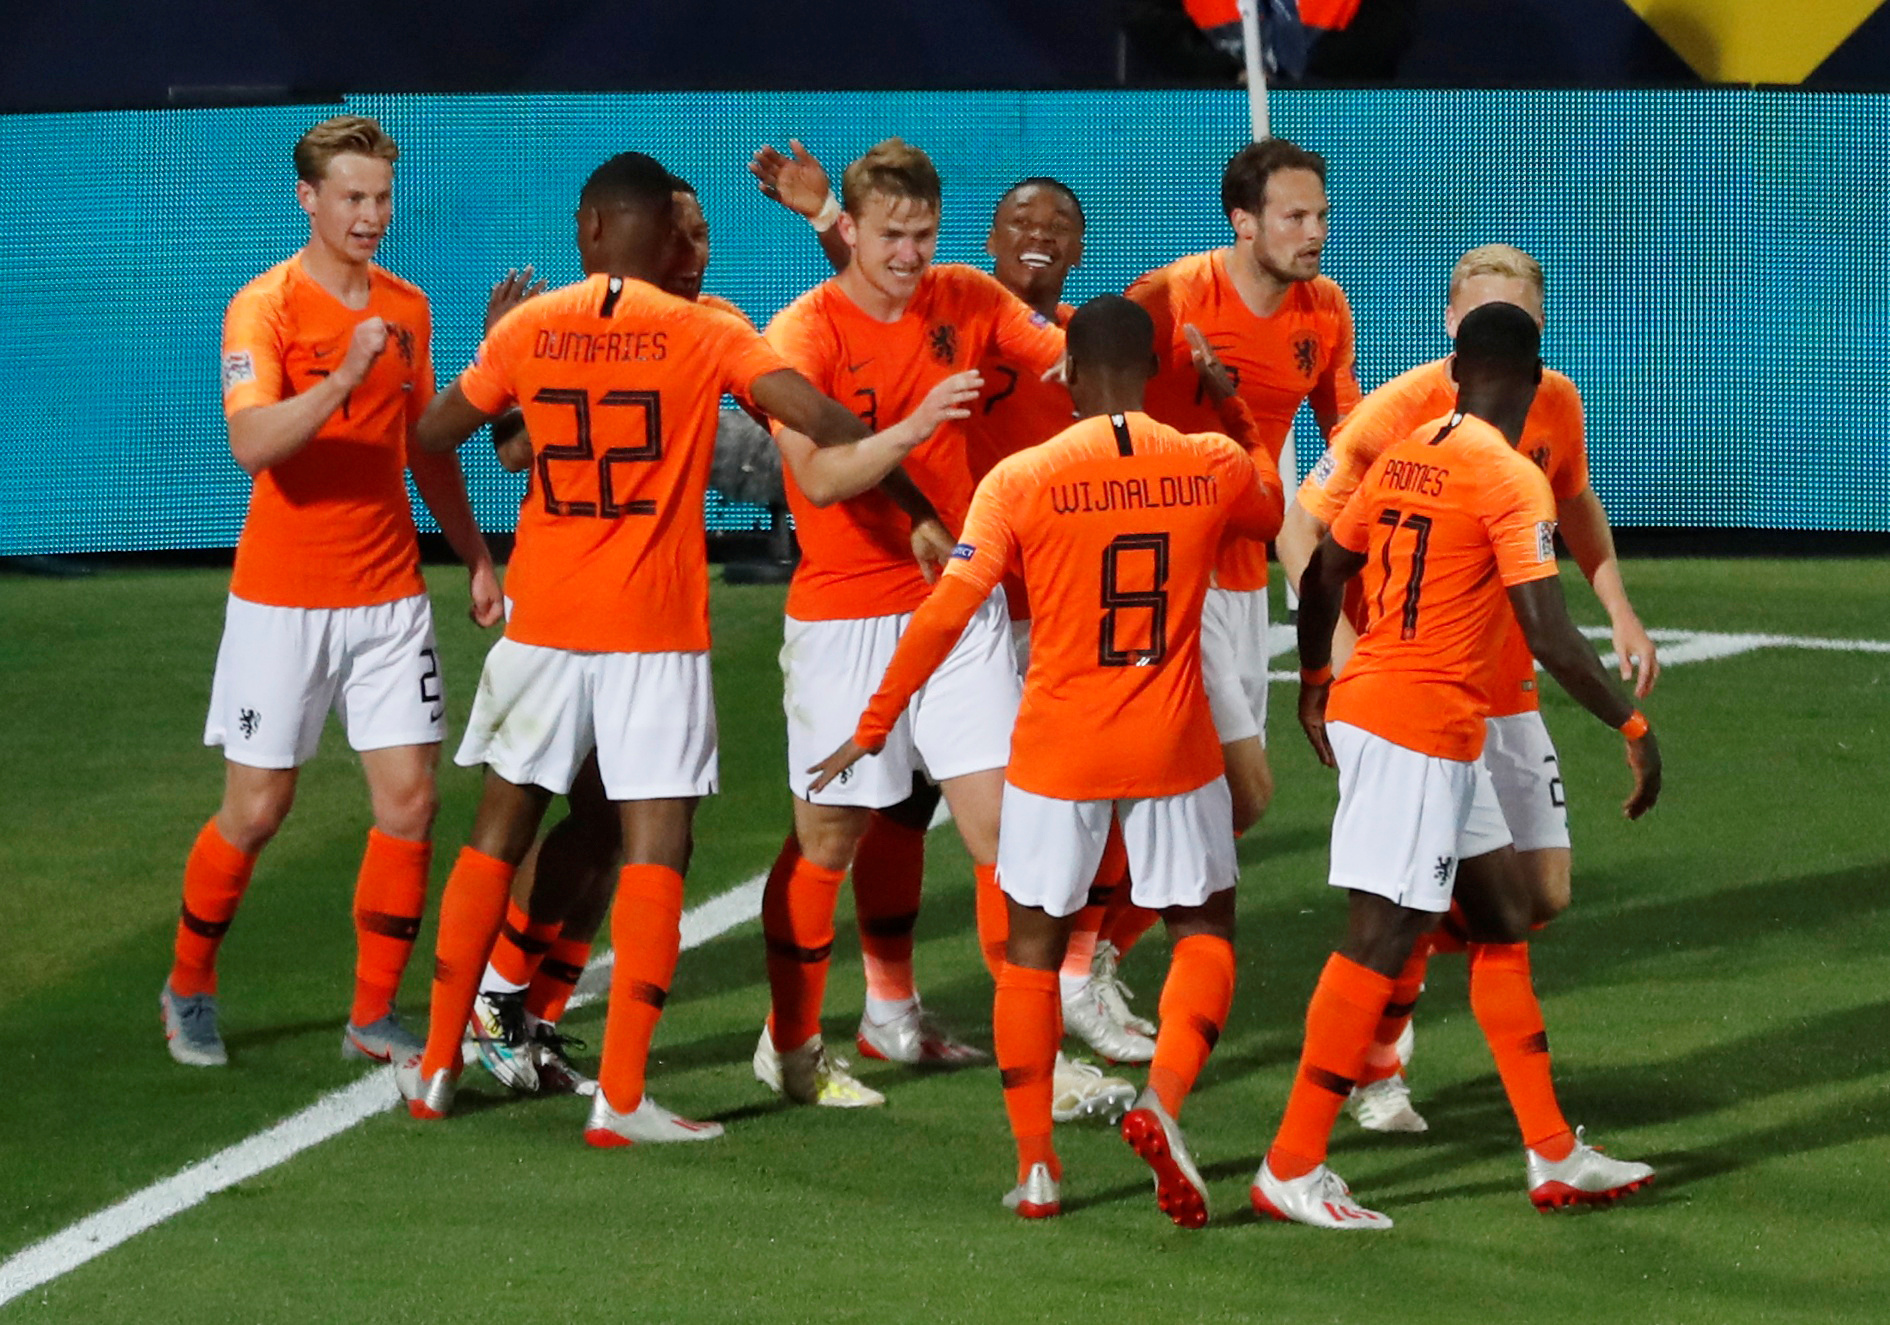 2019-06-06T202531Z_1473443678_RC158D76E800_RTRMADP_3_SOCCER-UEFANATIONS-NLD-ENG